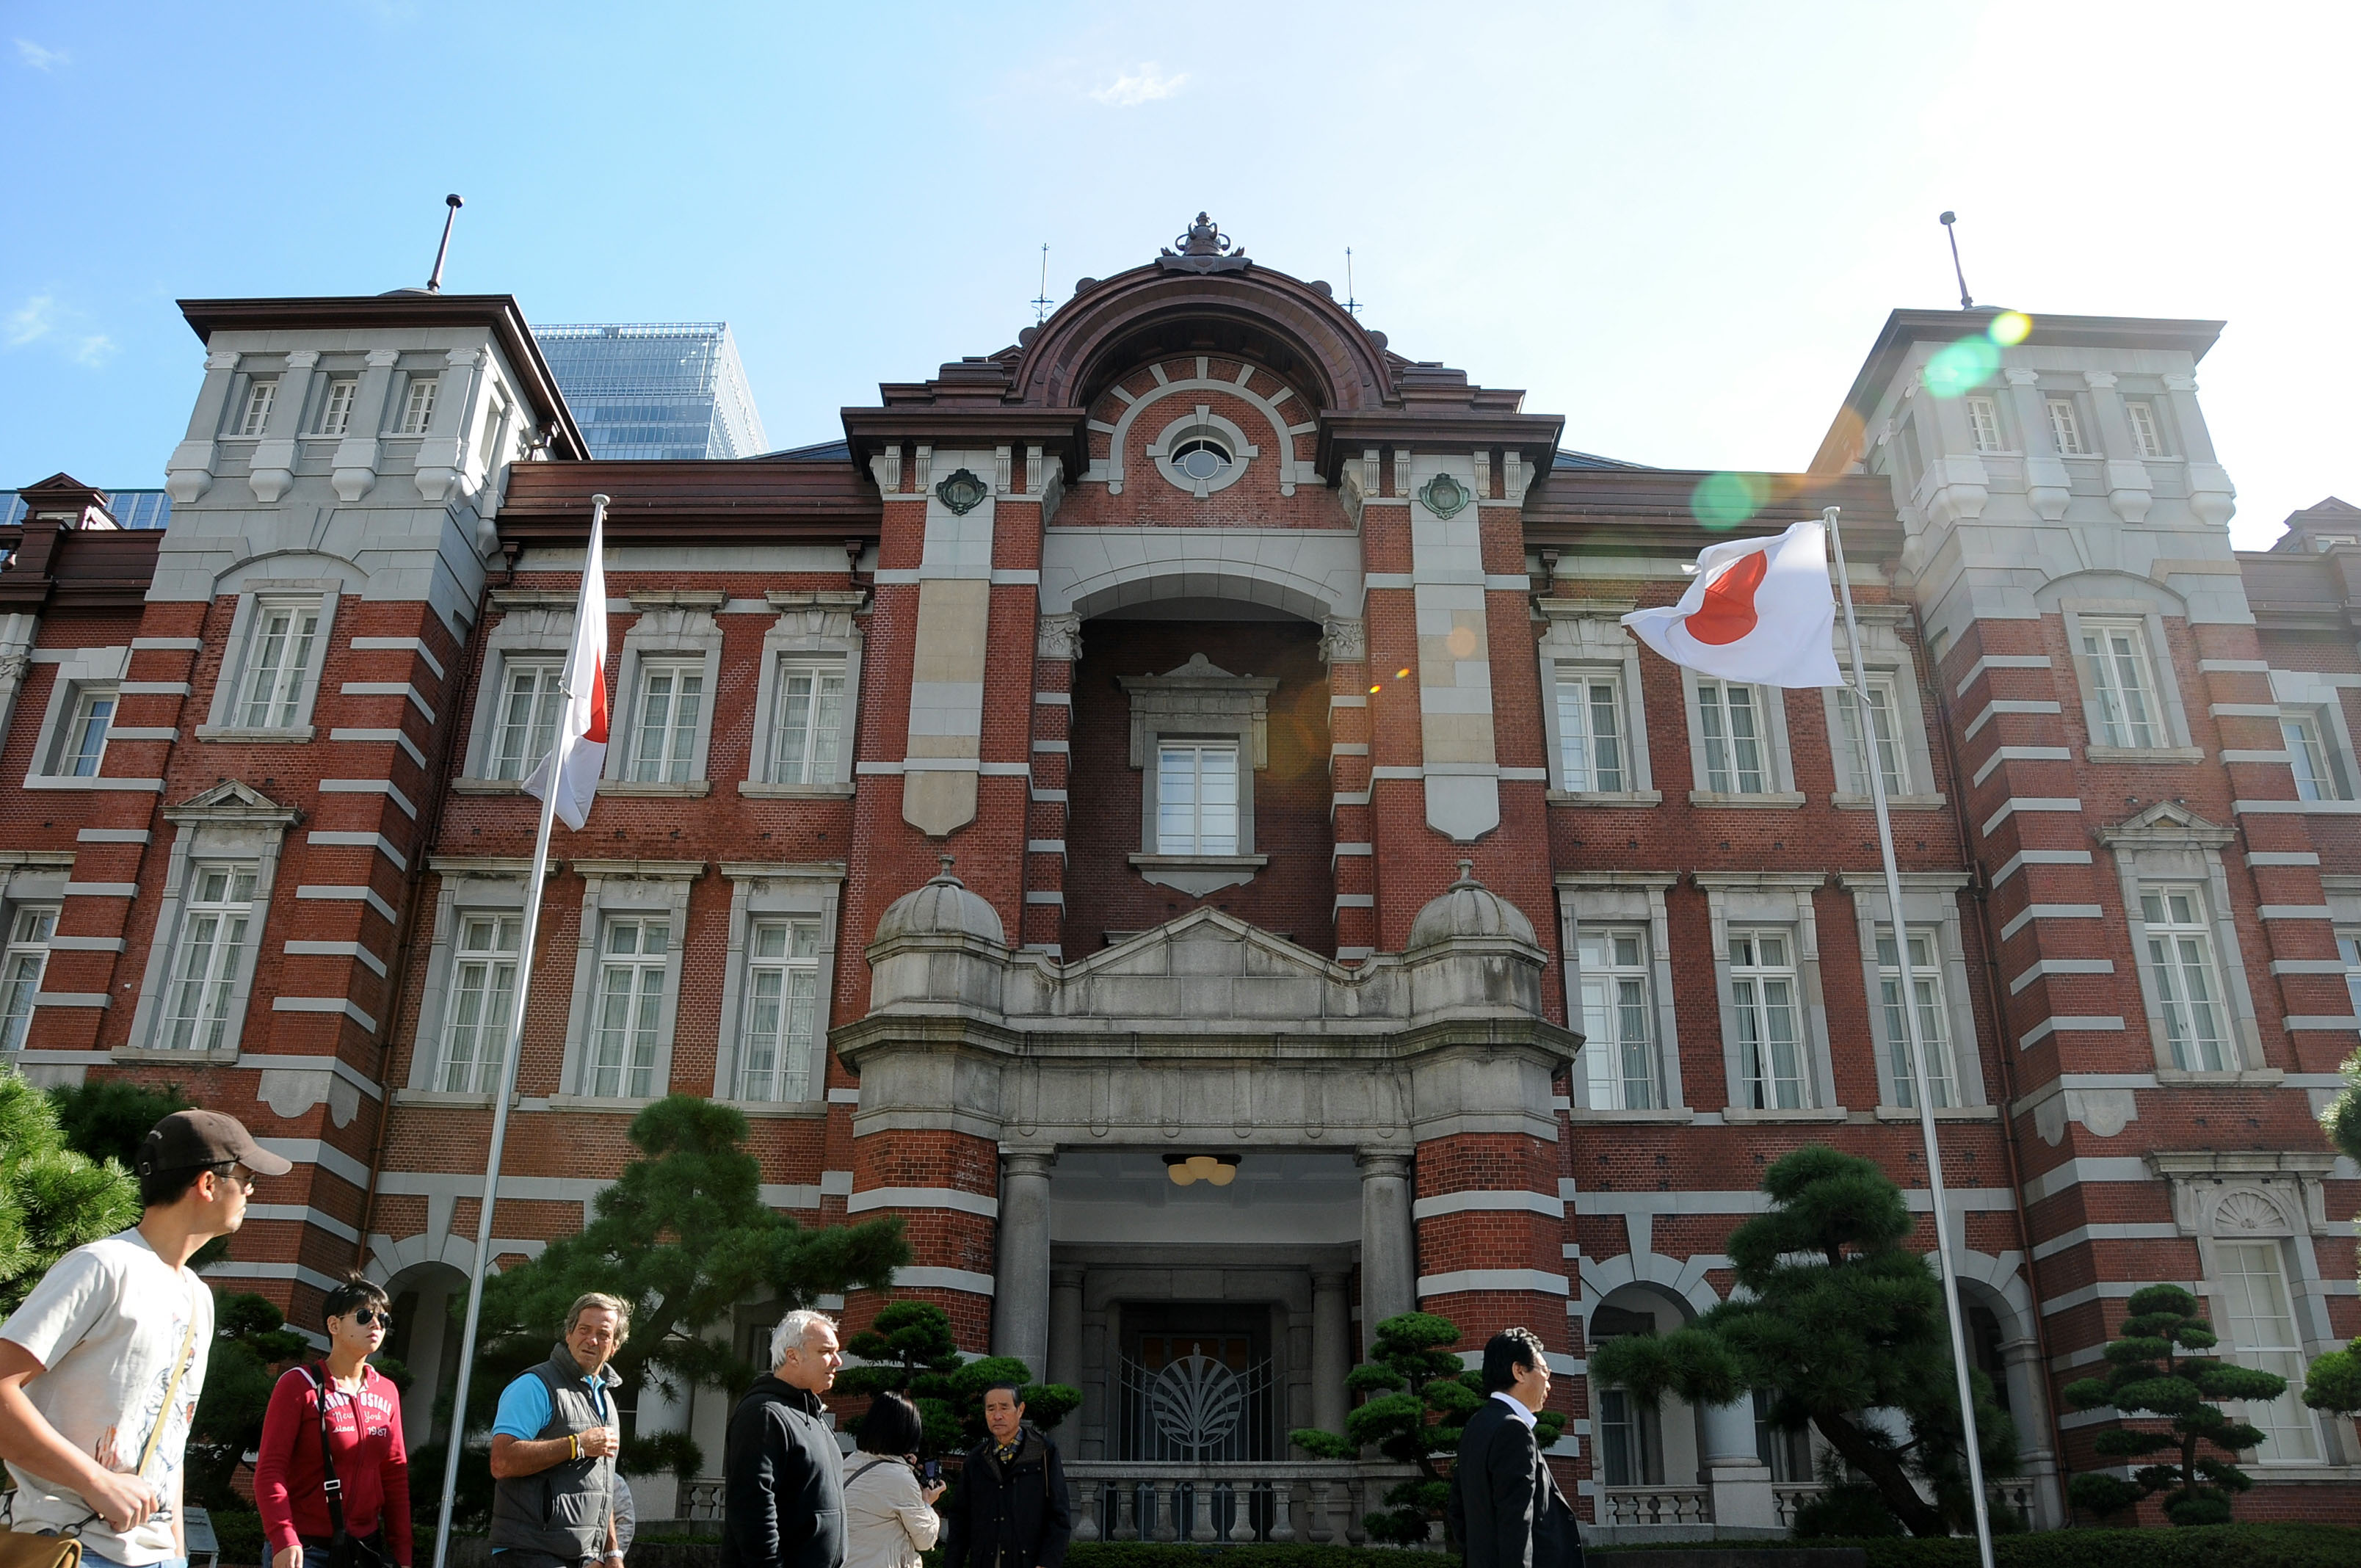 Tourists walk past the front of the JR Tokyo Station building in the Marunouchi business district.